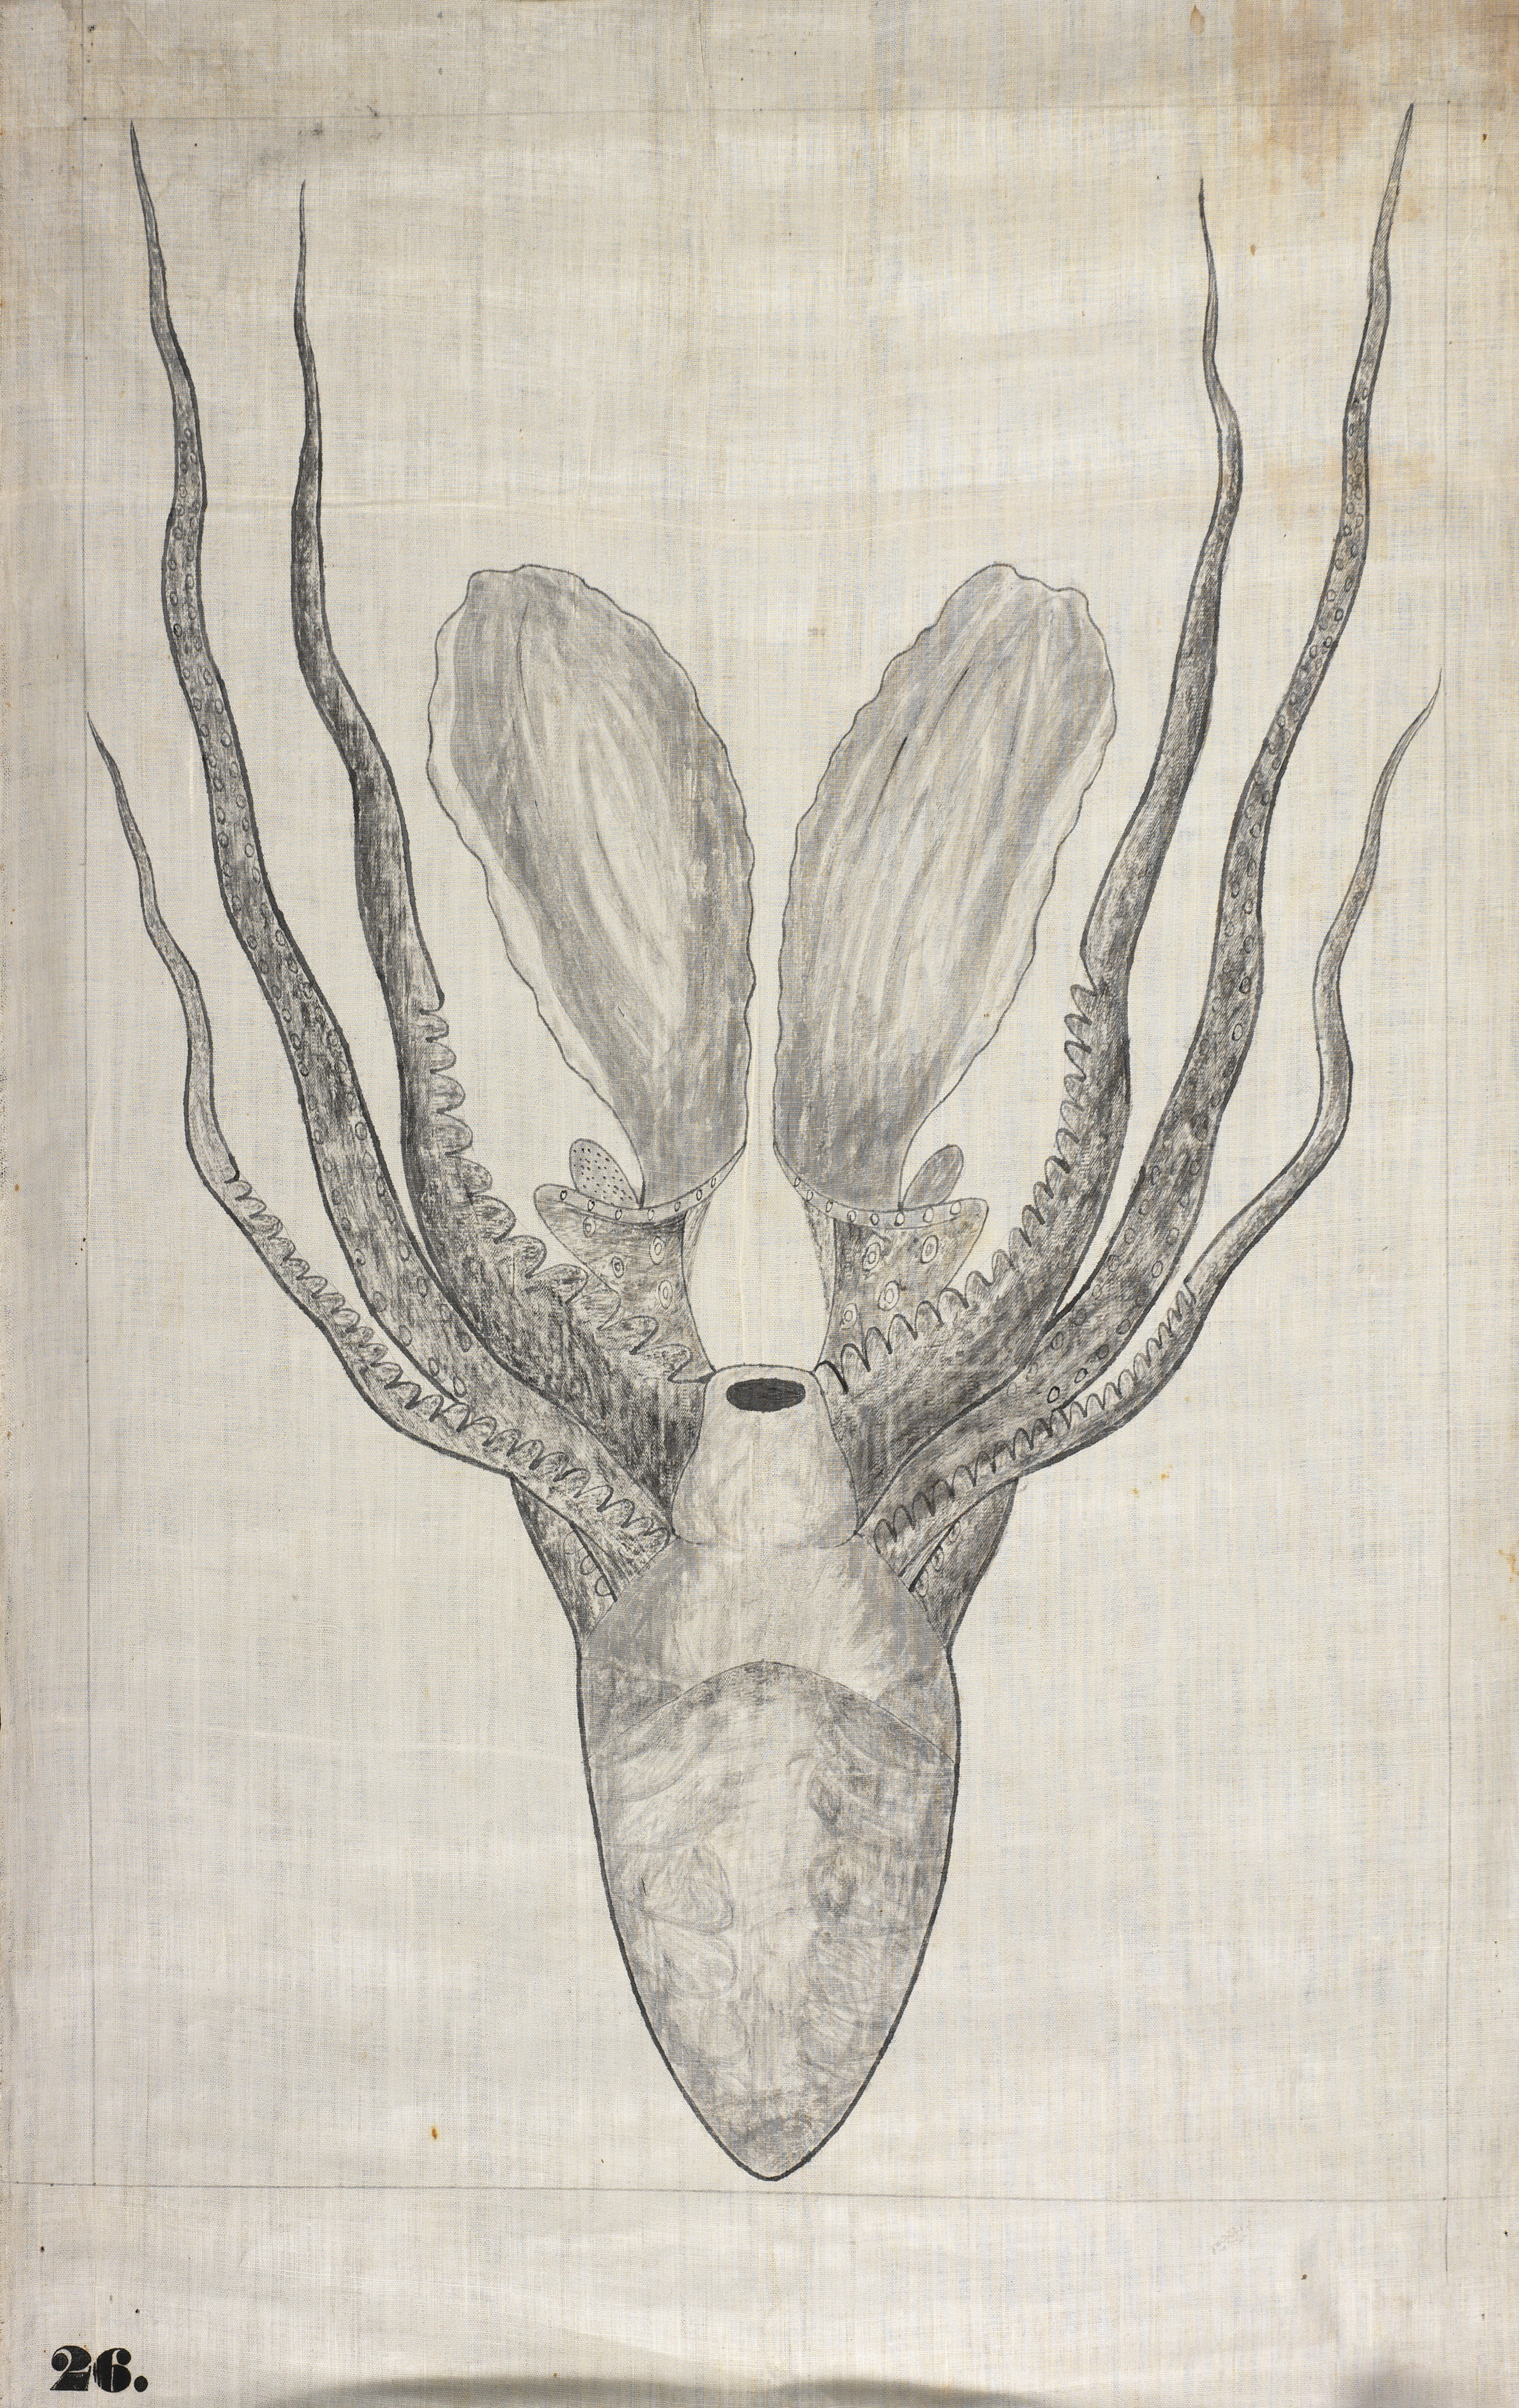 """26. Octopus Orra White Hitchcock (1796–1863) Amherst, Massachusetts 1828–1840 Pen and ink and ink wash on cotton 28 3/4 x 20"""" Amherst College Archives & Special Collections"""